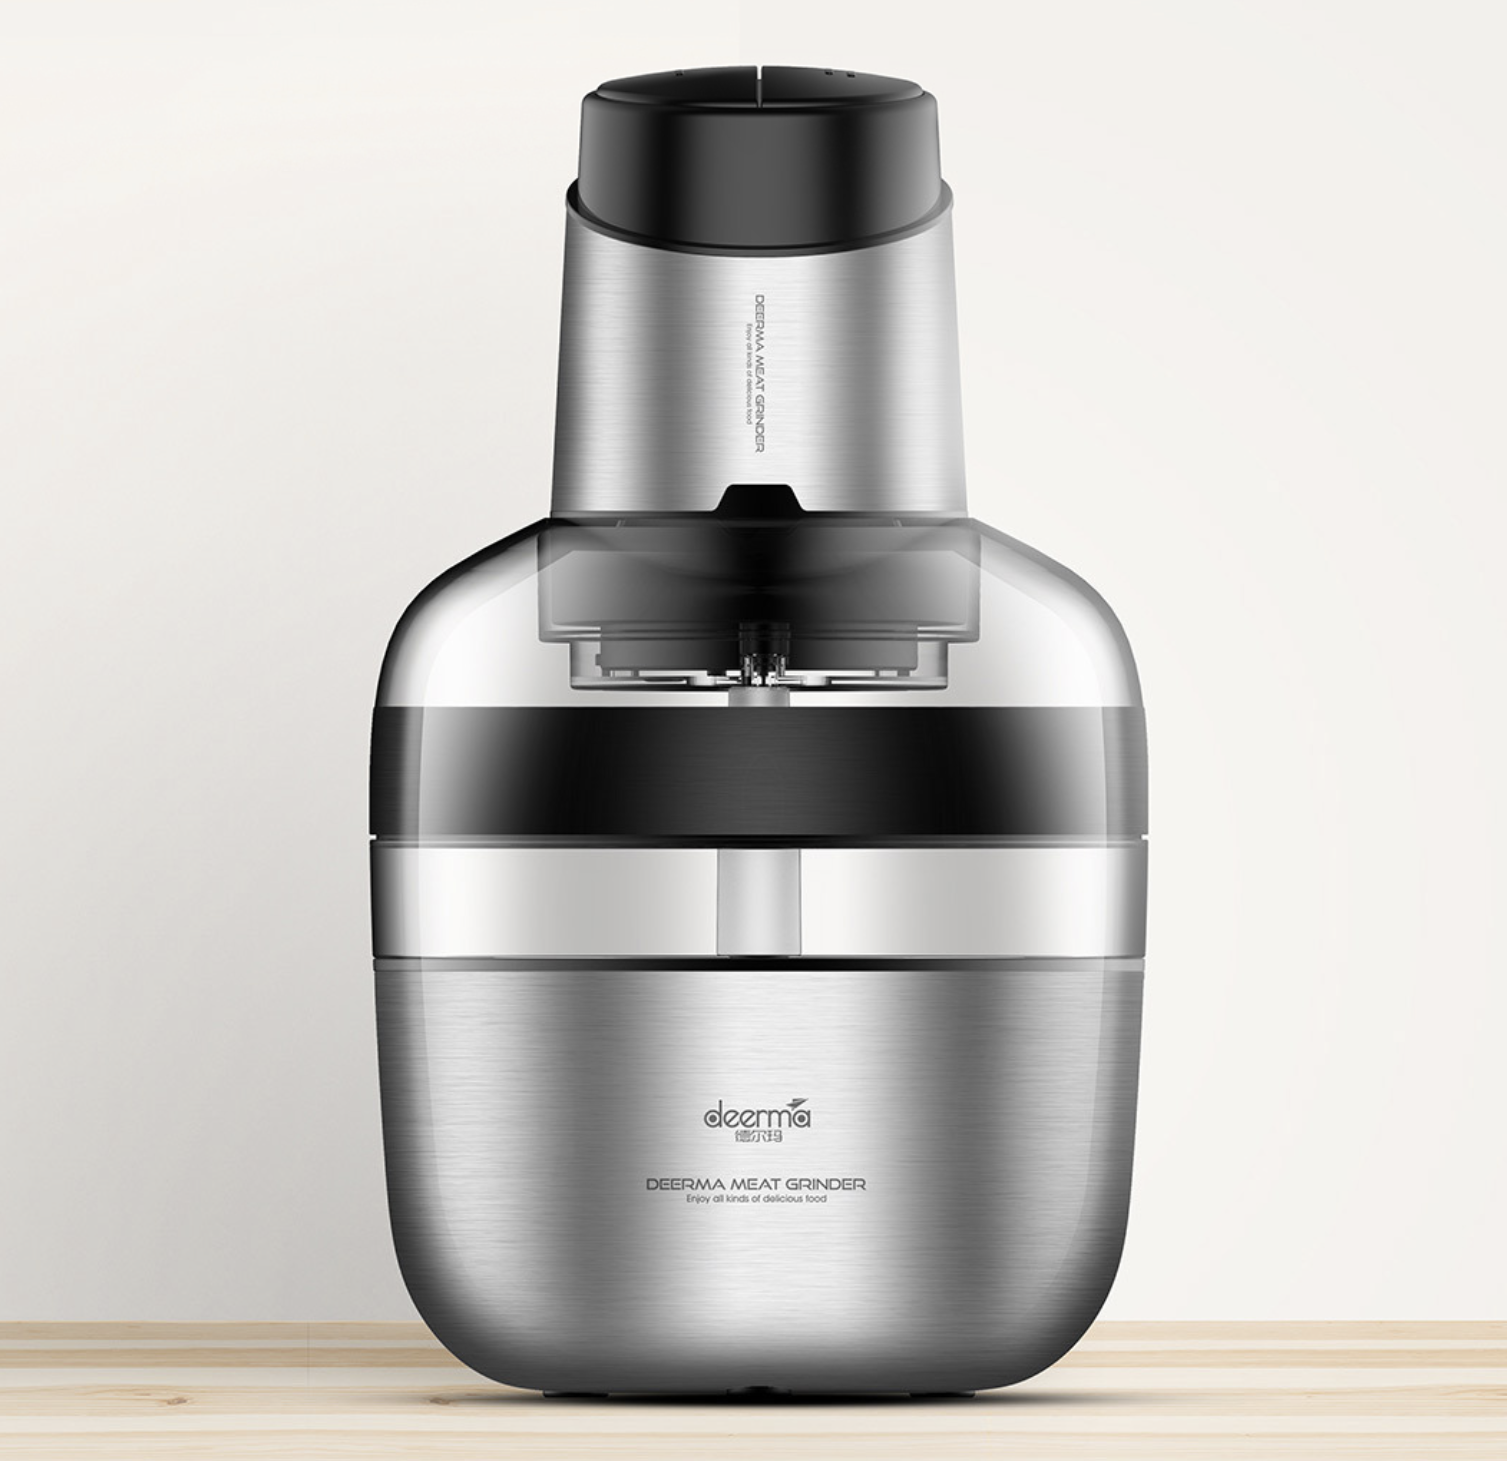 Xiaomi together with the company Deerma presents a new blender